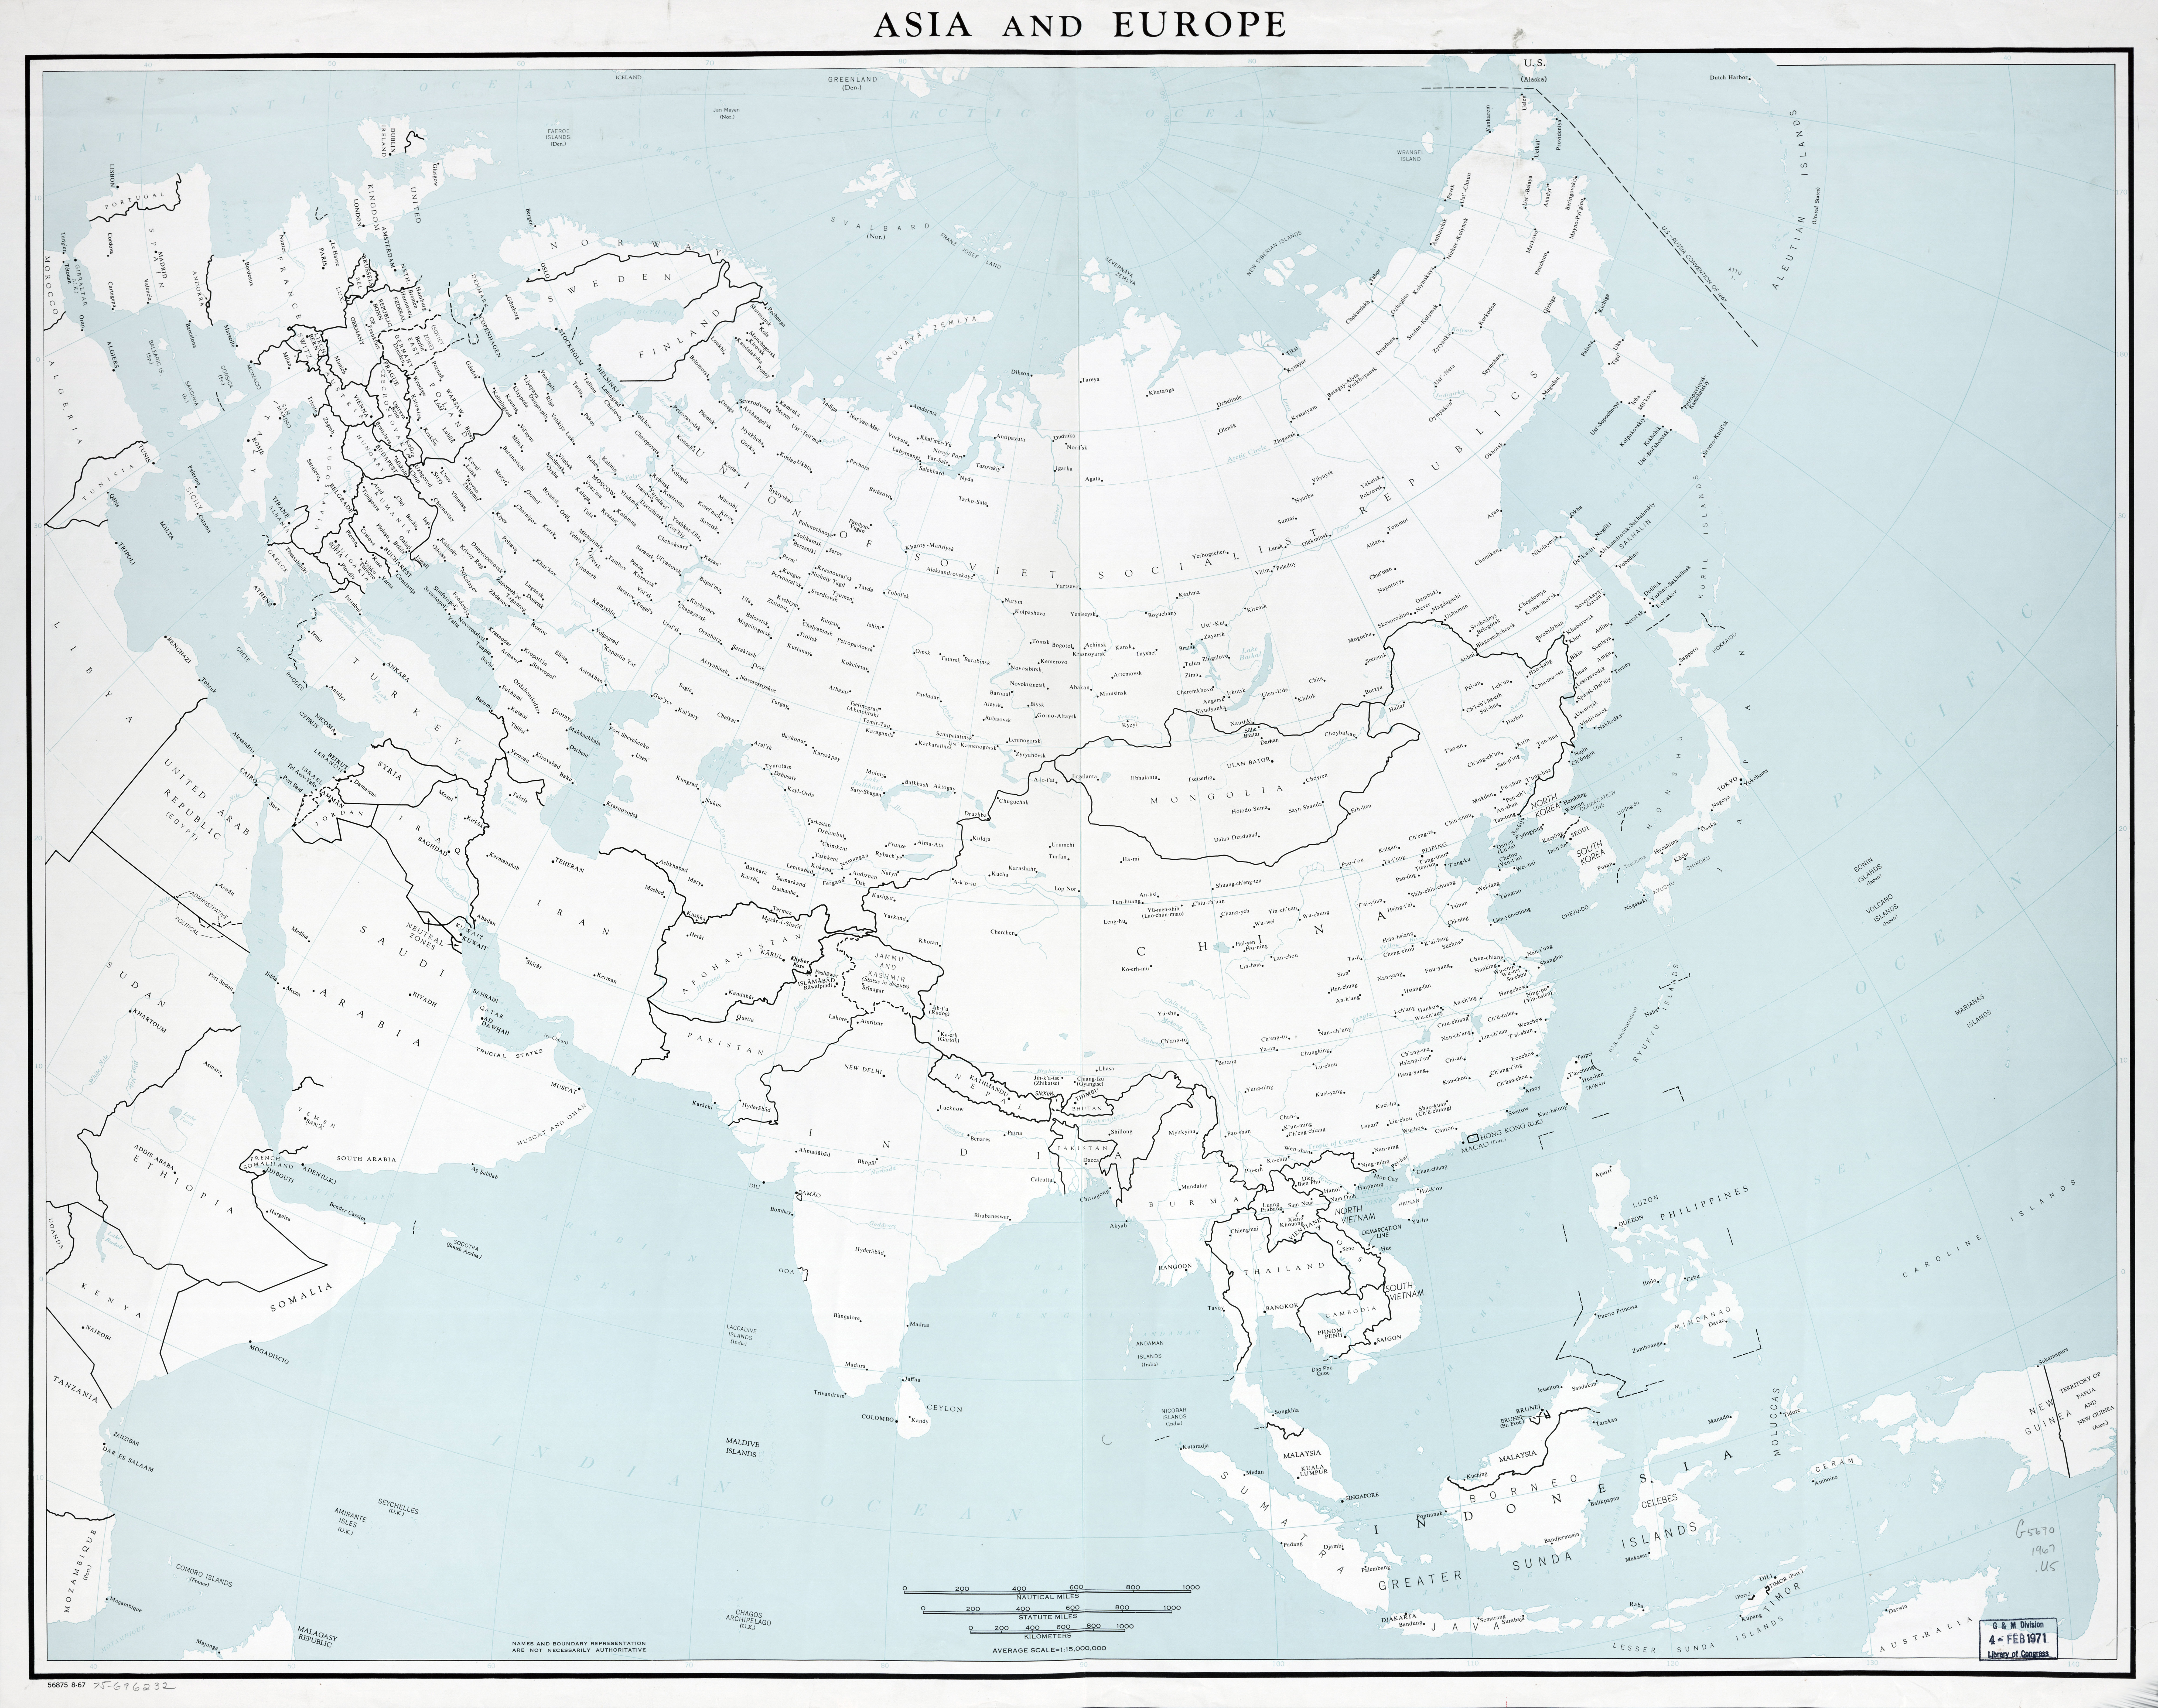 Map Of Europe With Scale.Large Scale Old Political Map Of Asia And Europe 1967 Old Maps